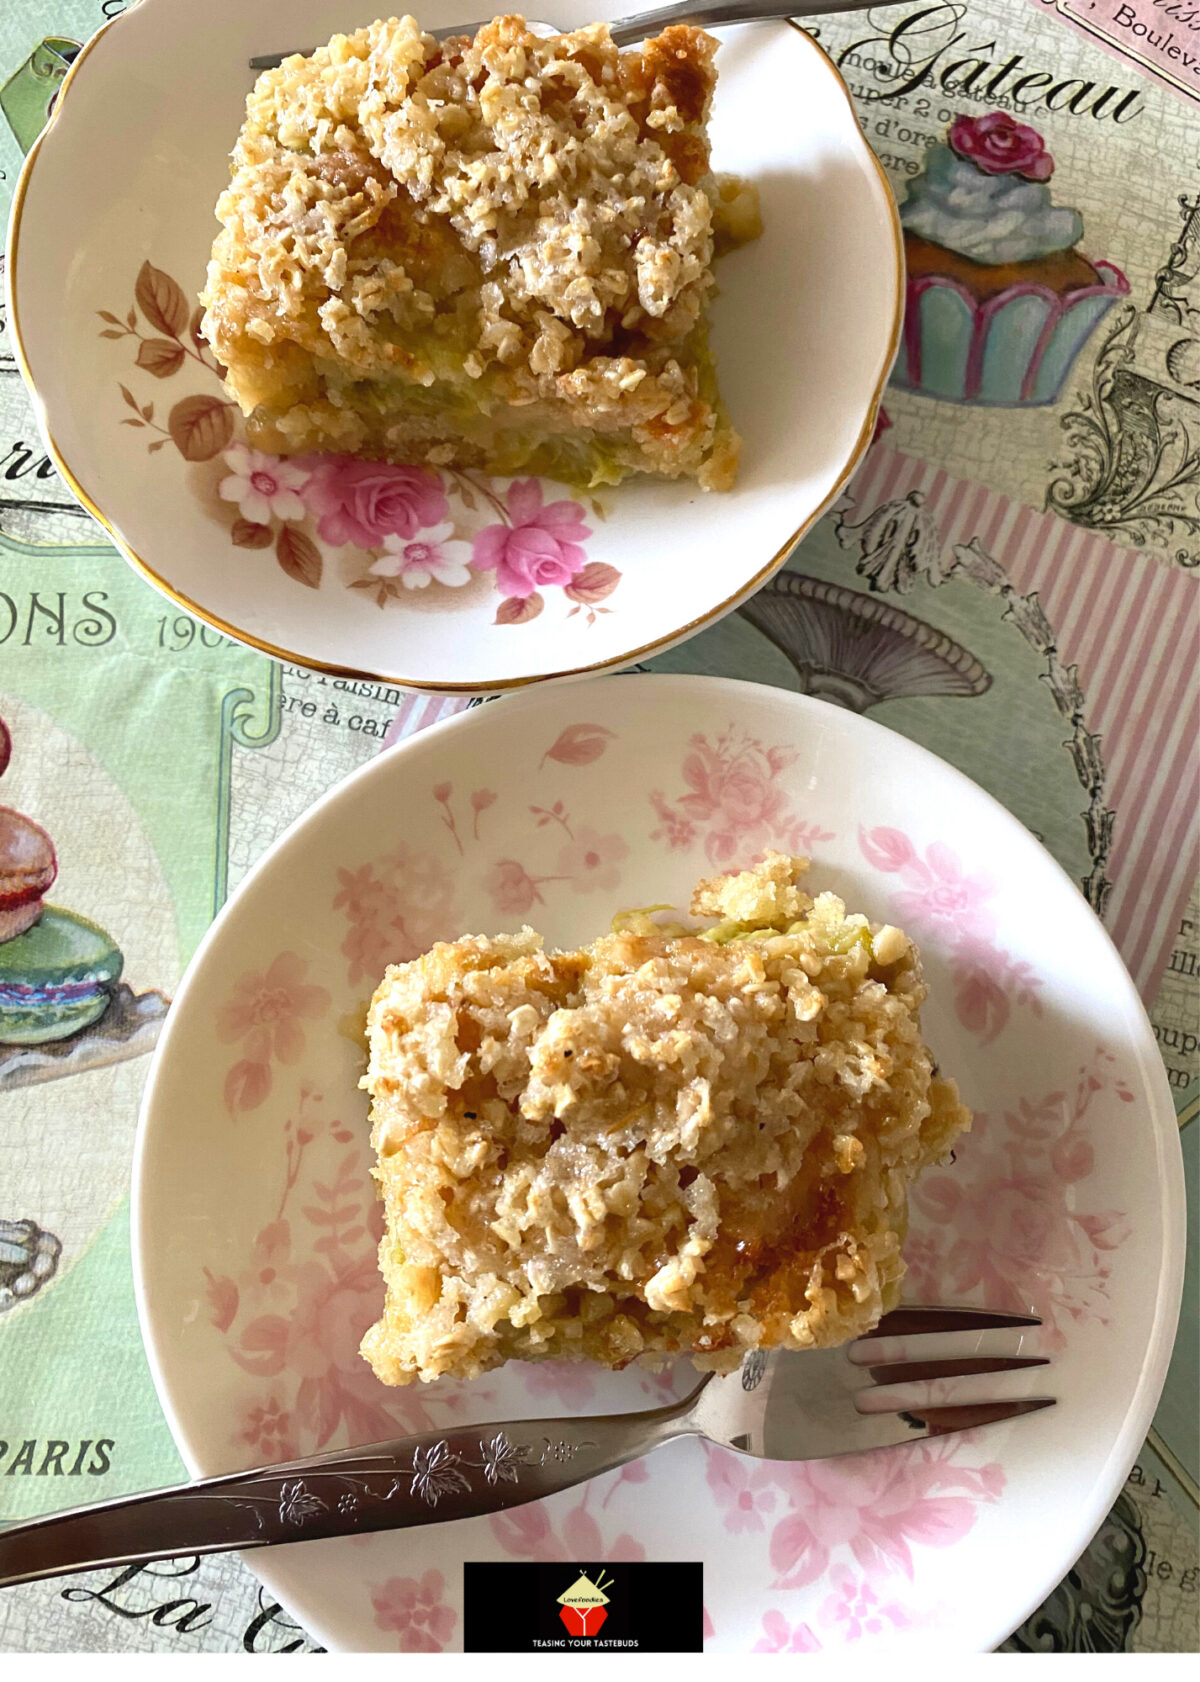 Lazy Daisy Rhubarb Oatmeal Cake. Just like grandma used to make, old fashioned Lazy Daisy Oatmeal Cake with rhubarb, delicious served warm, this gooey gooey cake is a great dessert!